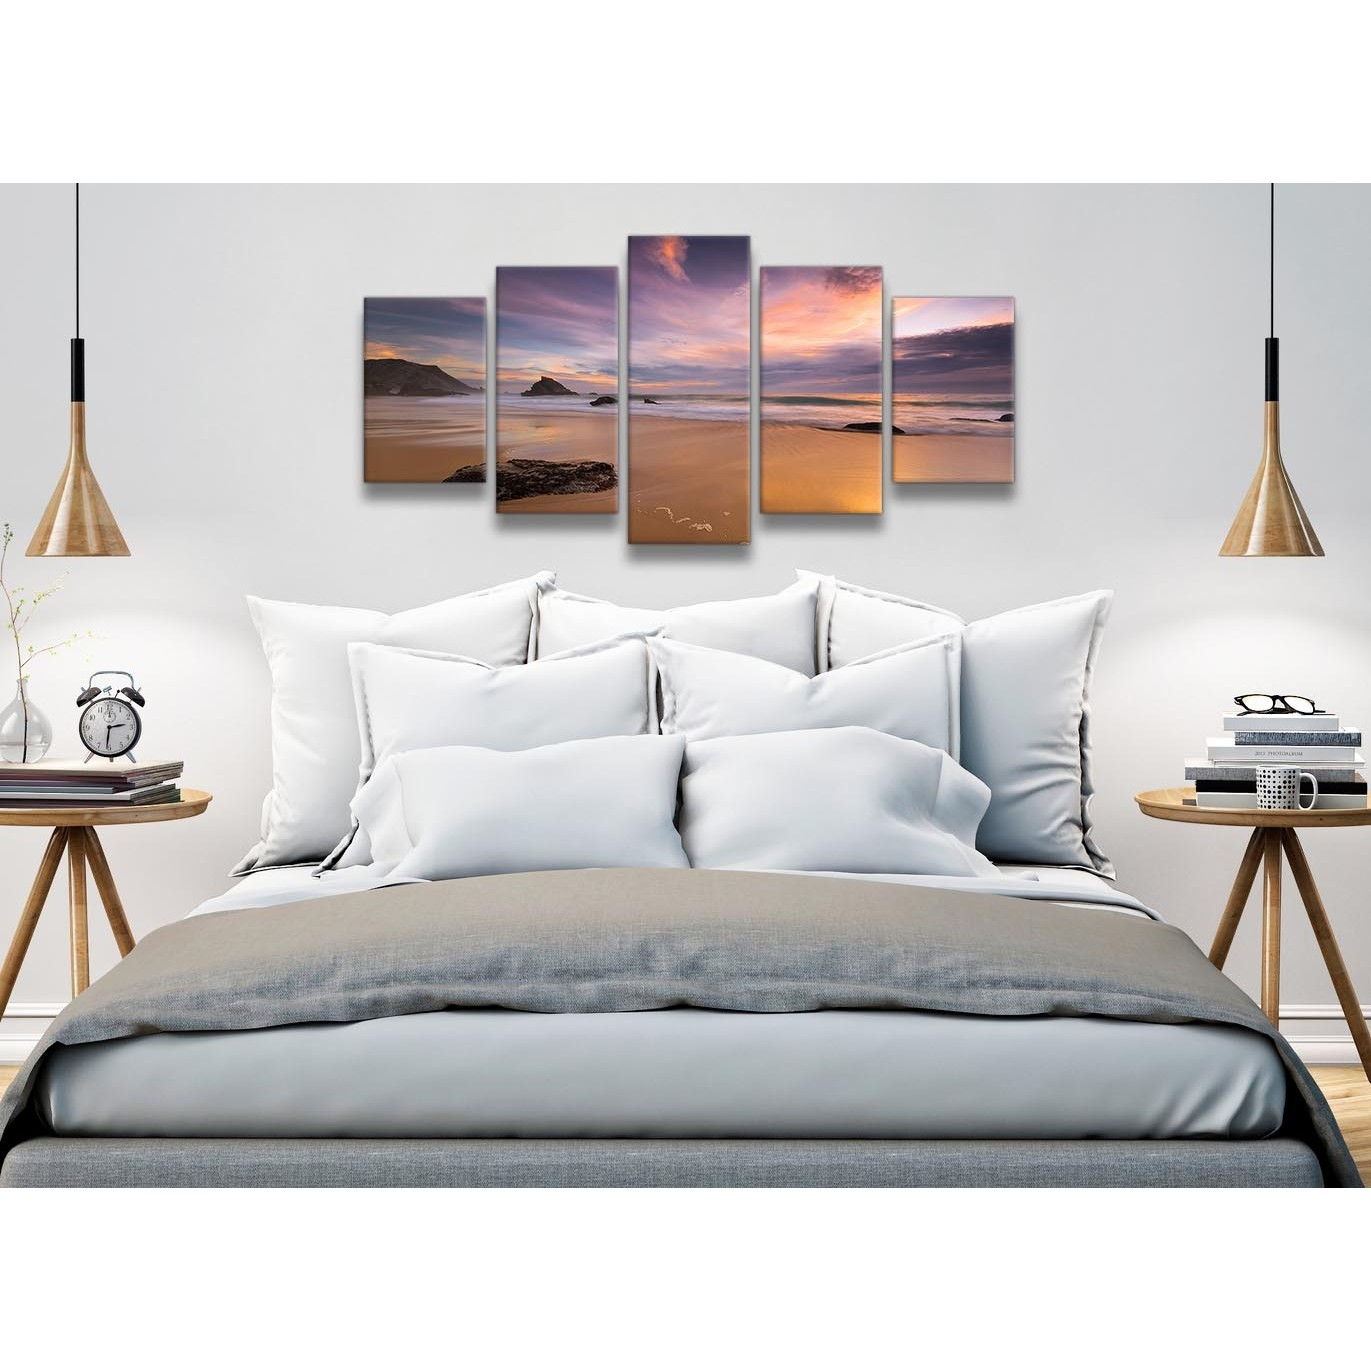 5 Piece Canvas Wall Art Prints - Panoramic Landscape Beach Sunset pertaining to Newest Panoramic Wall Art